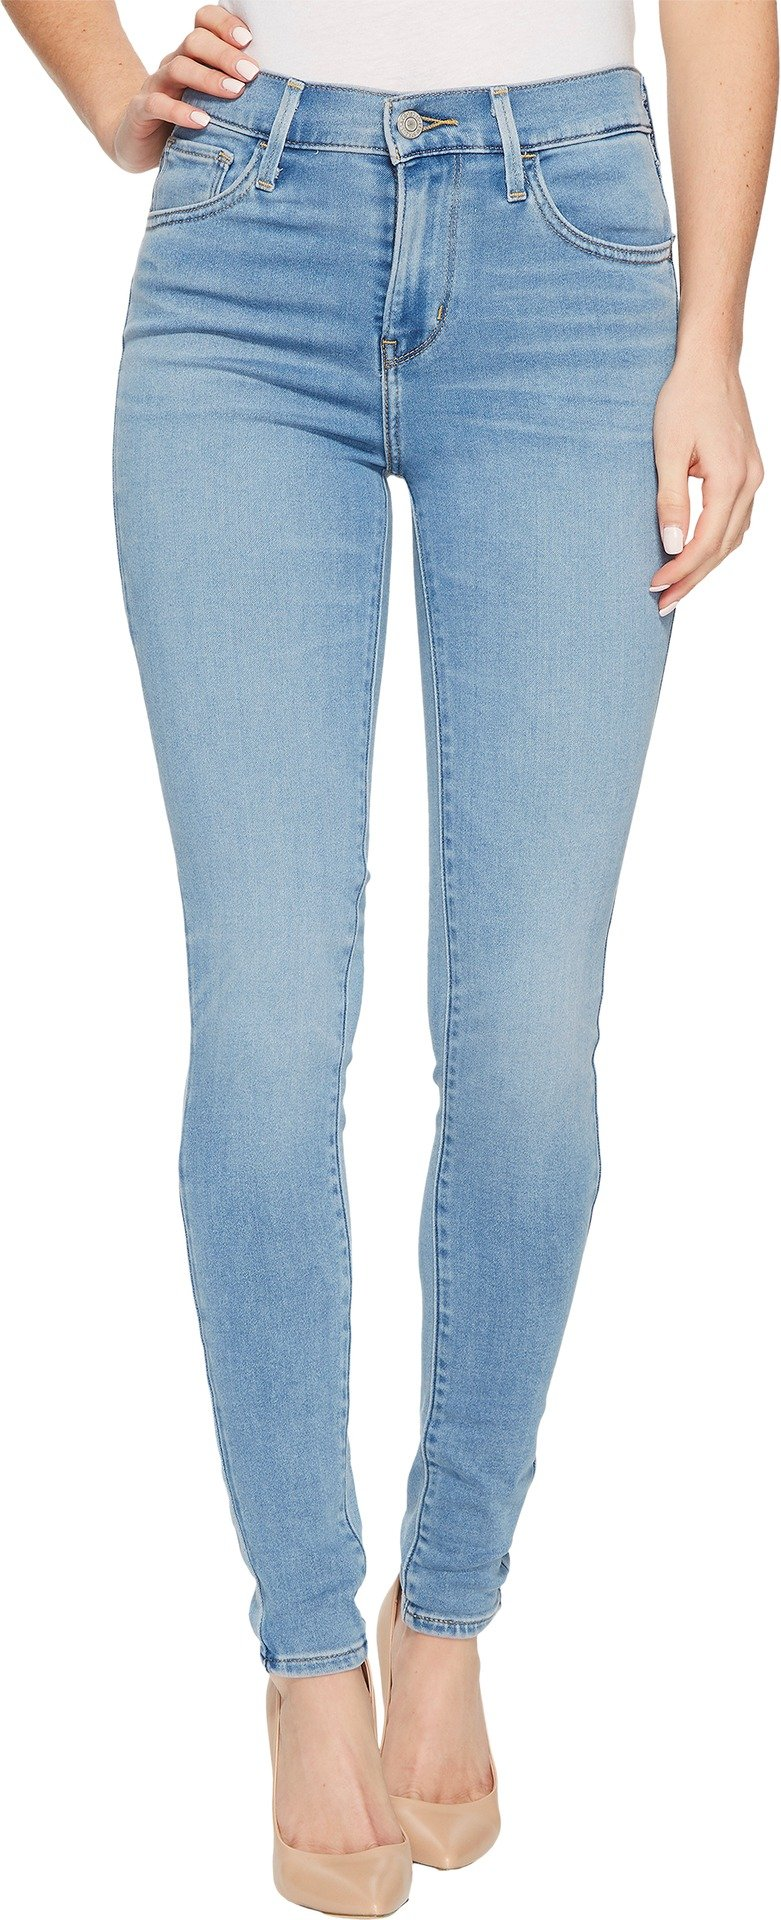 Levi's Women's Wedgie Skinny Jeans, Wedgie from The Block, 27 (US 4)